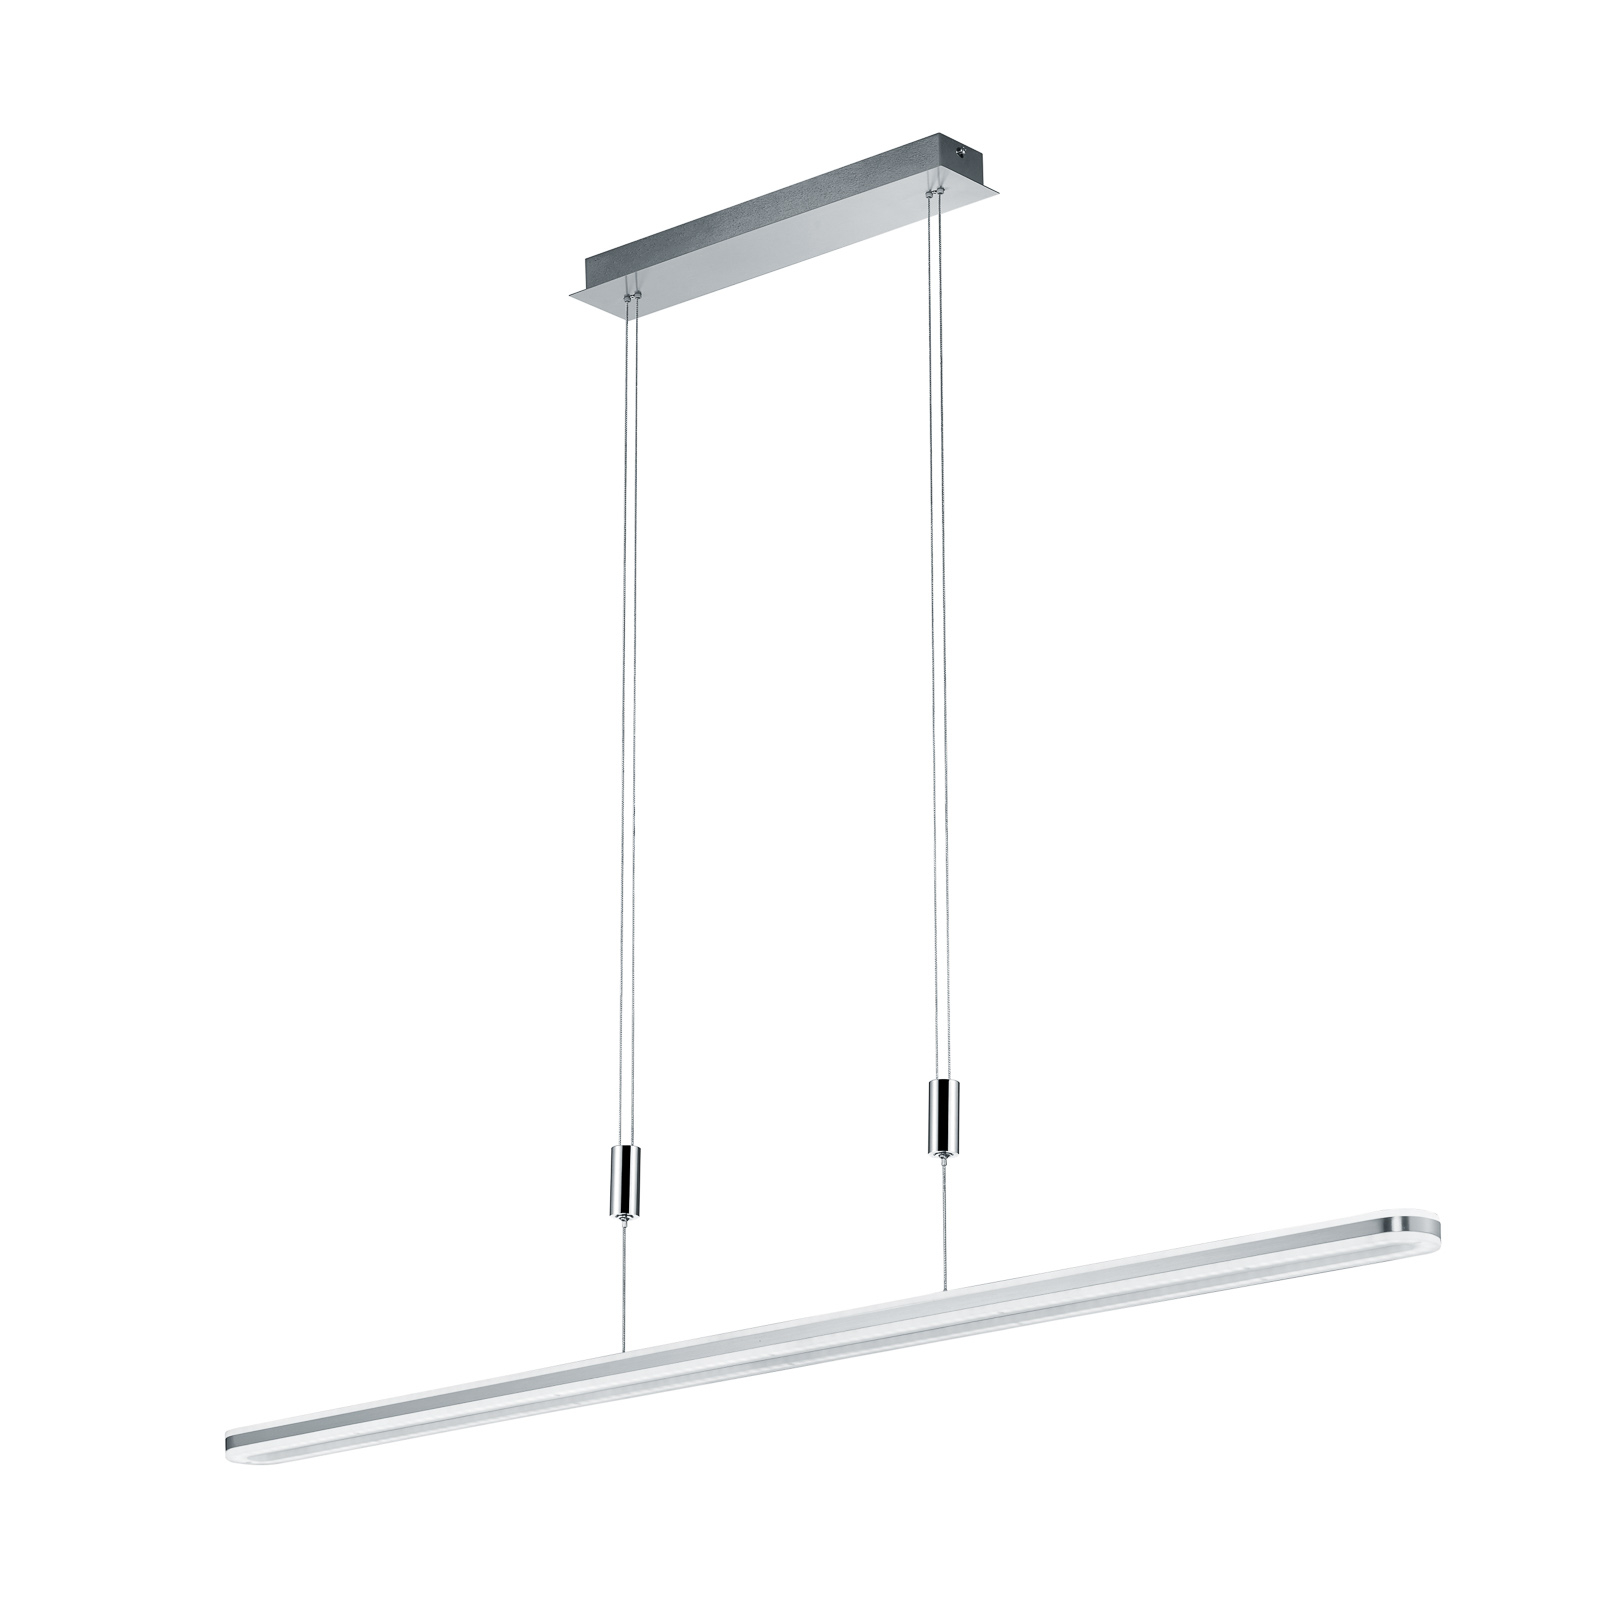 Leuchten Bilder B-leuchten Ontario Height-adjustable Hanging Lamp | Lights.co.uk